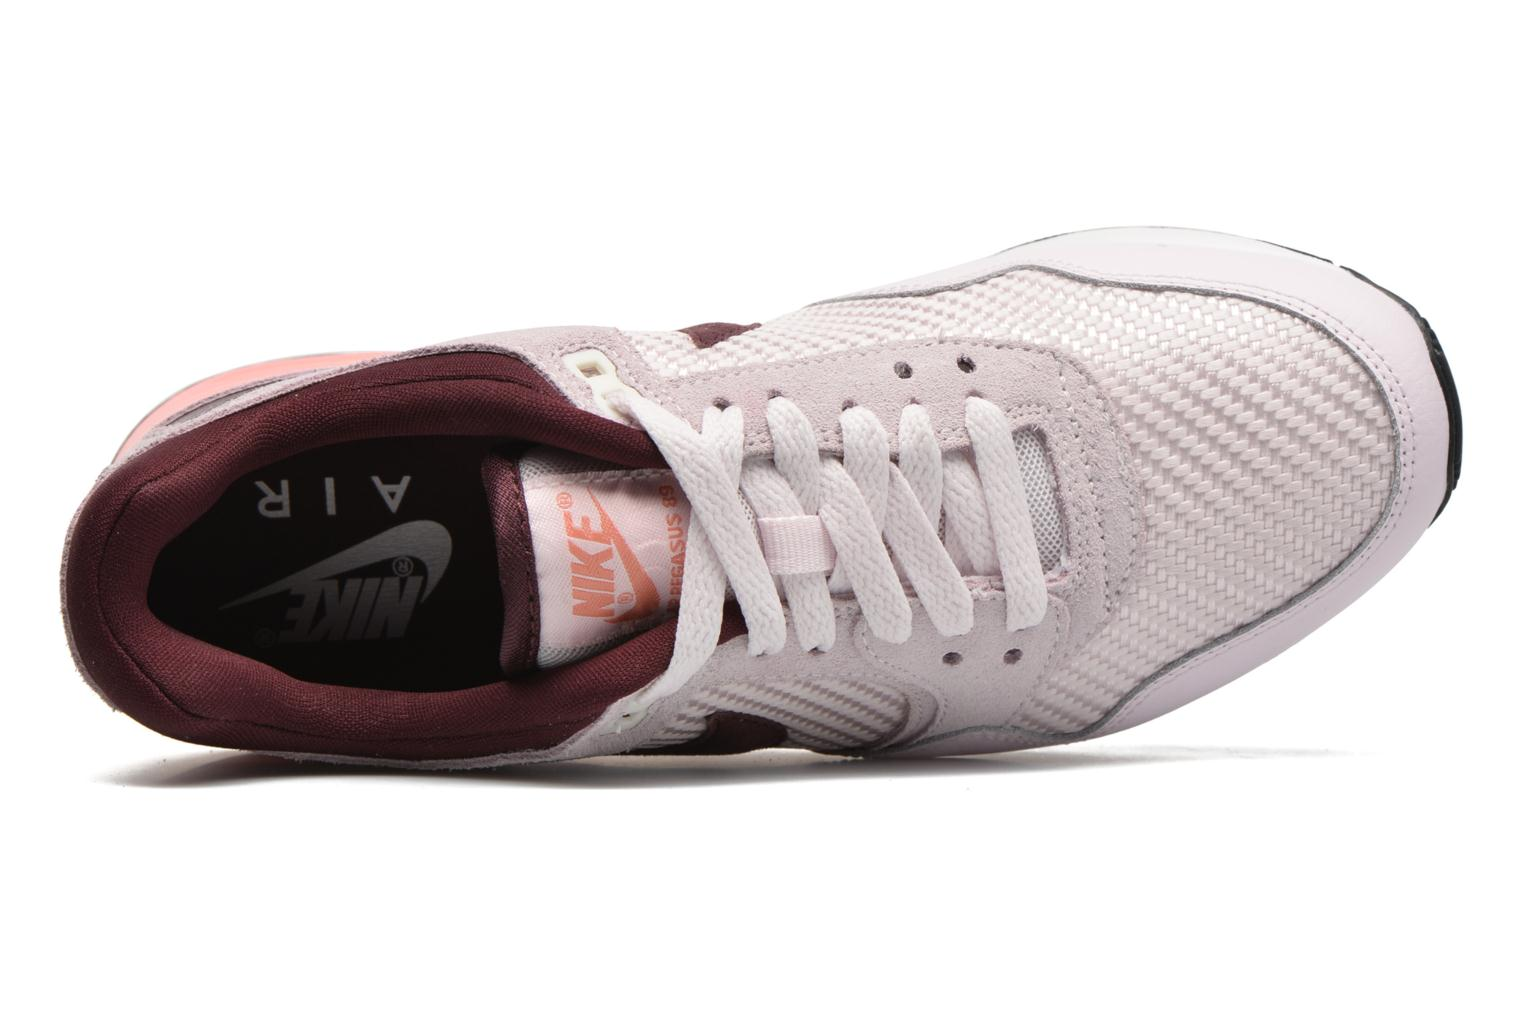 Nike W Air Pegasus '89 Prl Pink/Nght Mrn-Smmt Wht-Blk